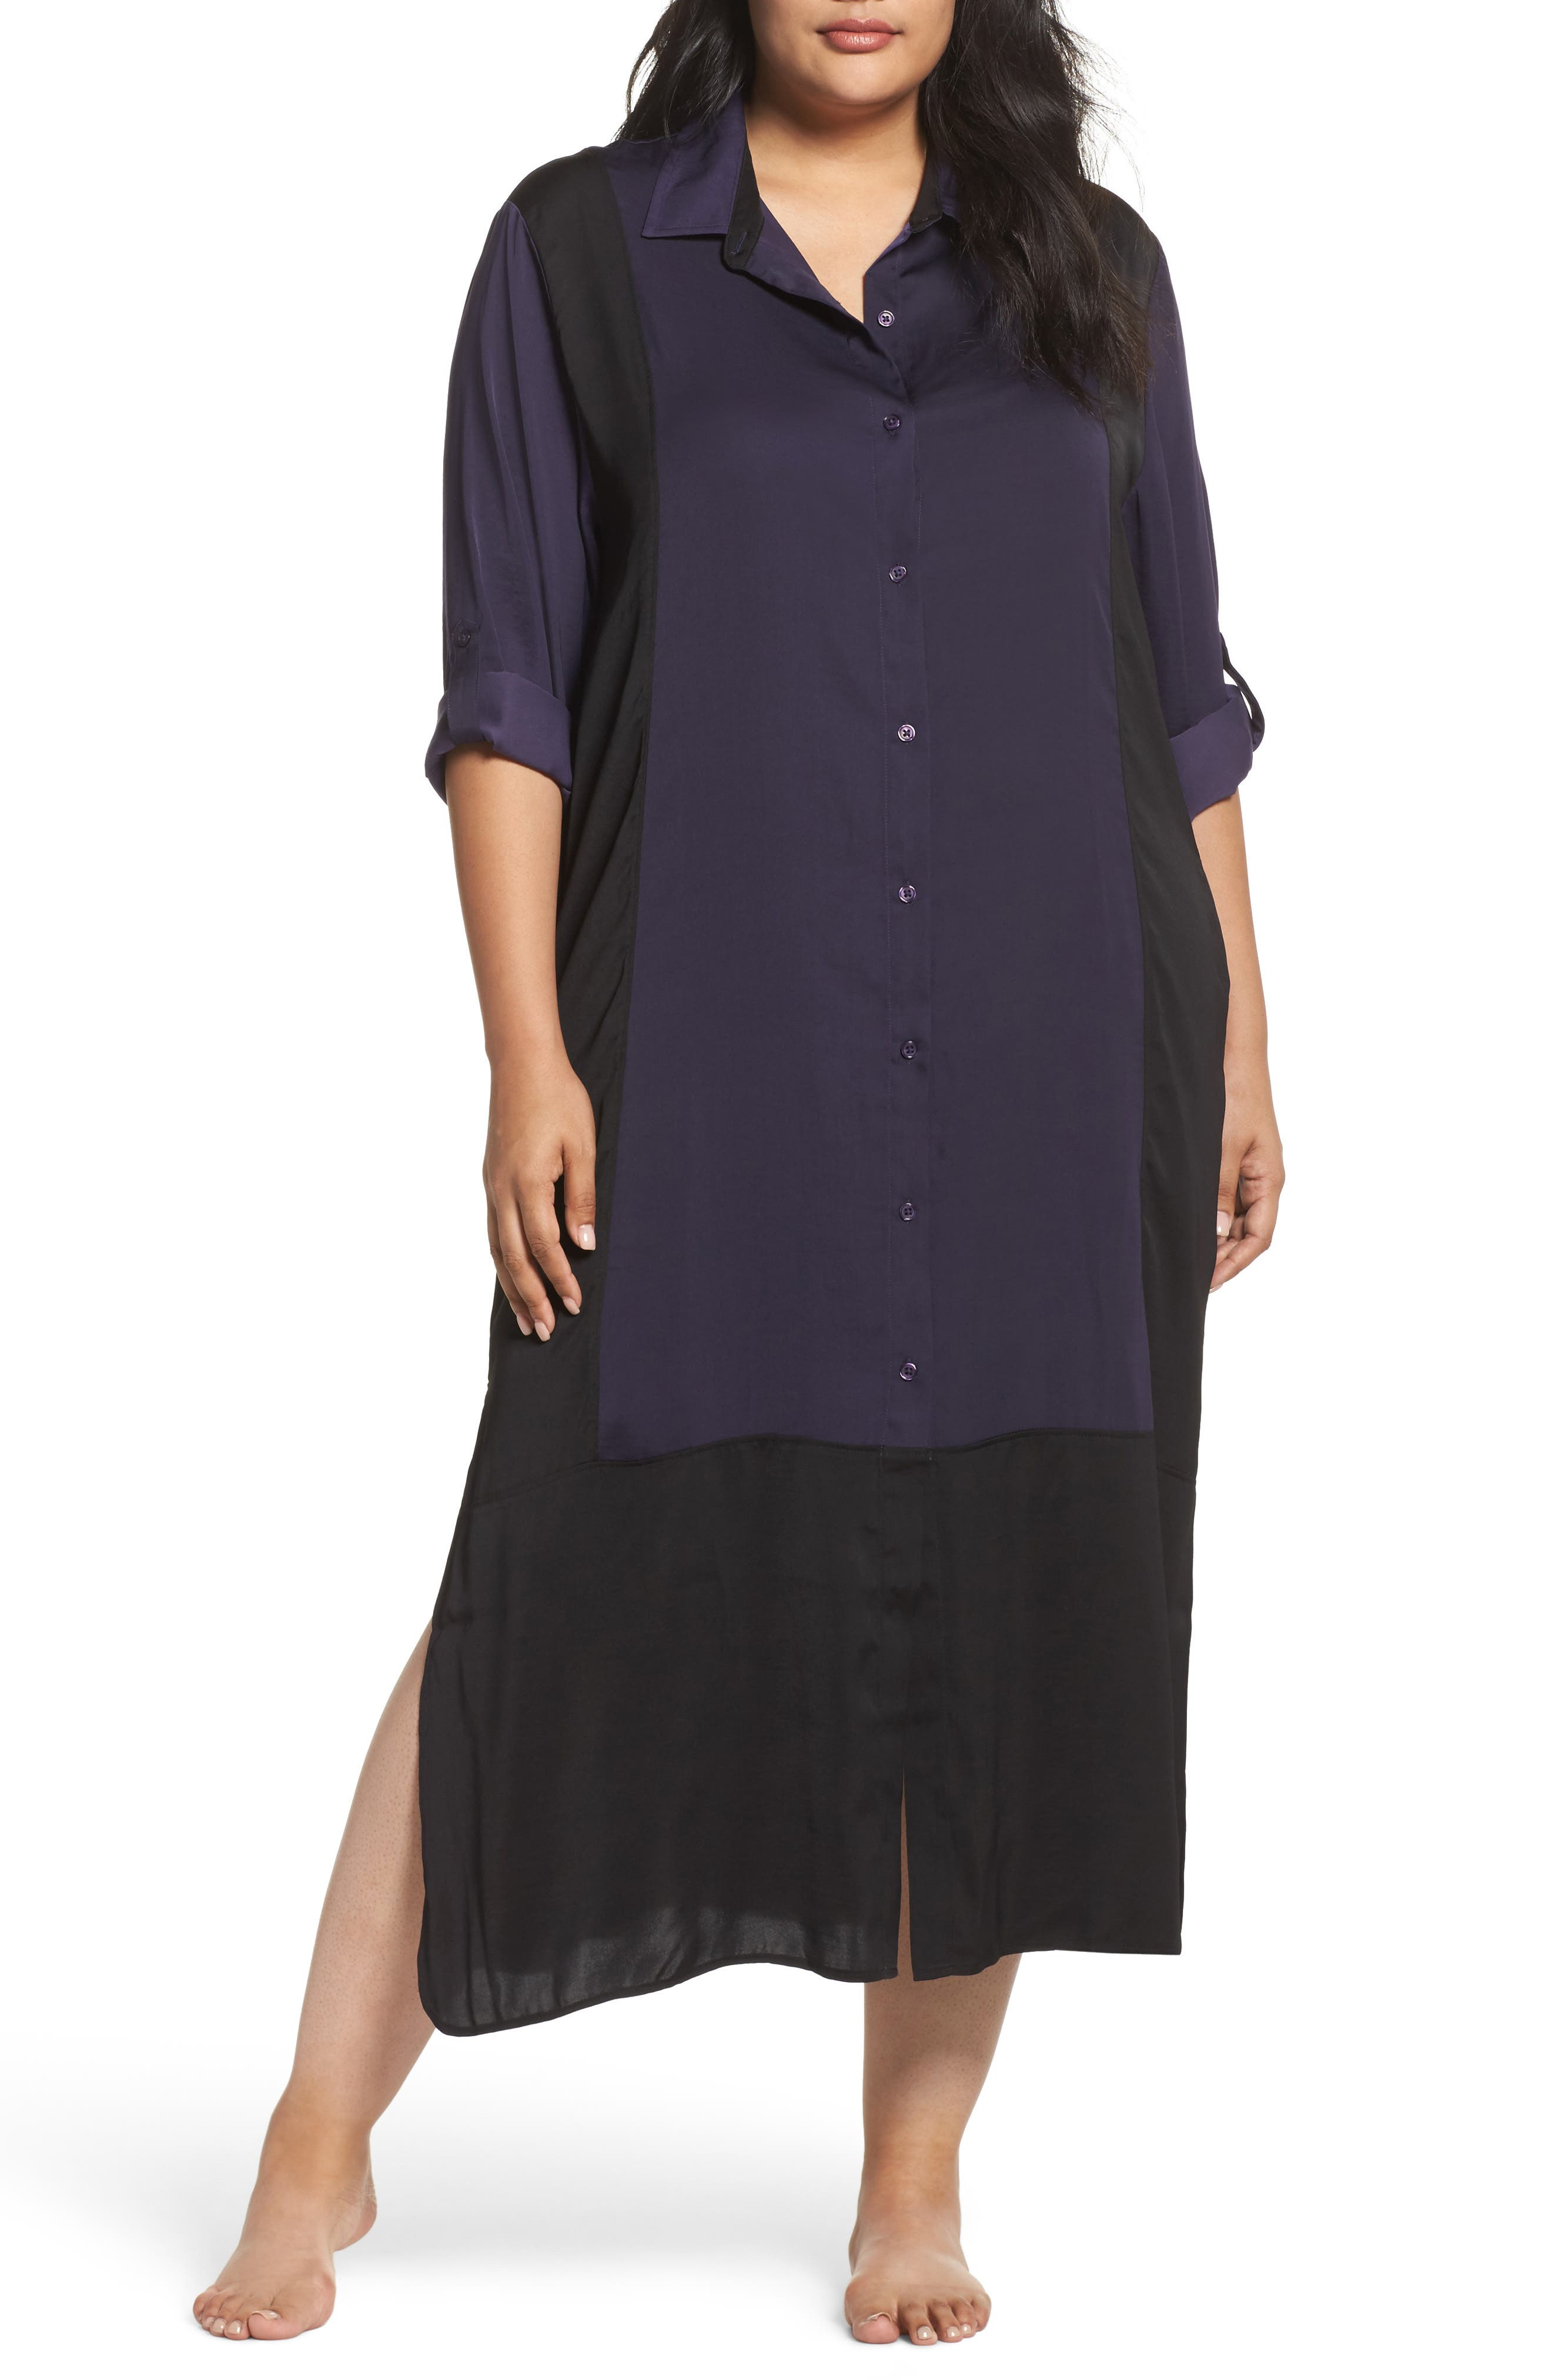 DKNY Satin Maxi Sleep Shirt (Plus Size)